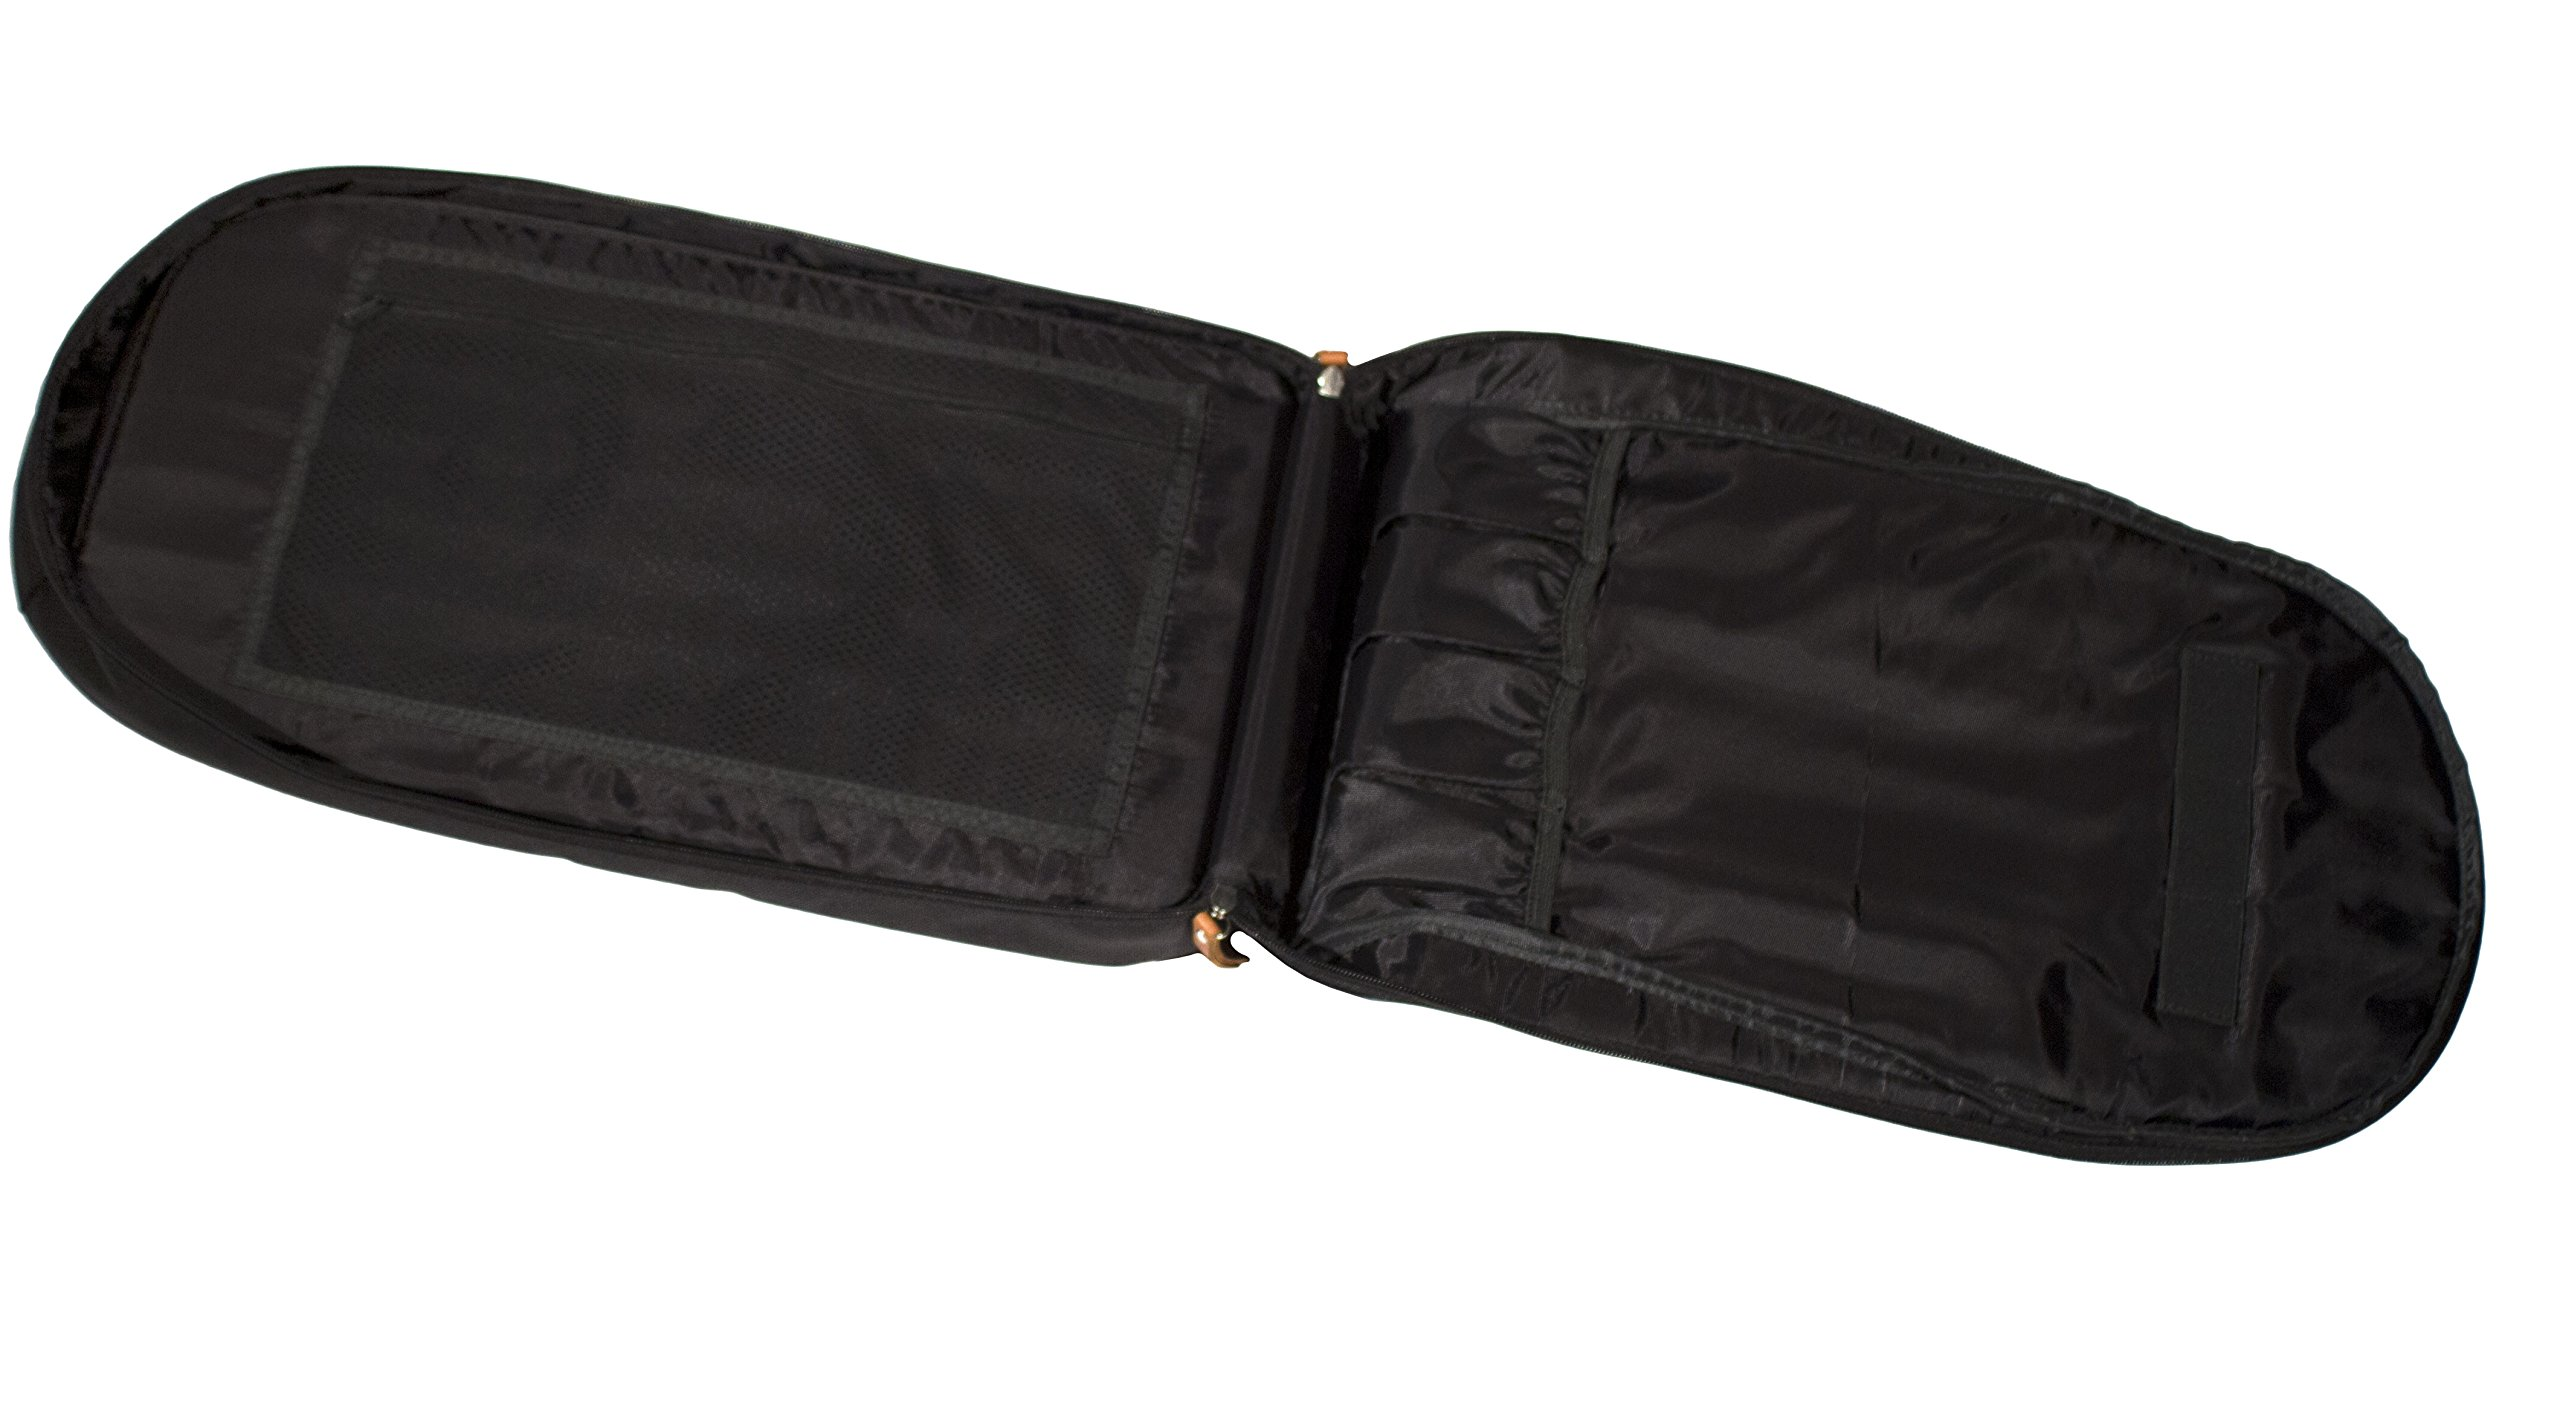 M(sqd) Roundsman Chef Knife Bag, Holds 17 Knives and Utensils with 3 Pockets for Tablet and Notebook by M(sqd) (Image #4)